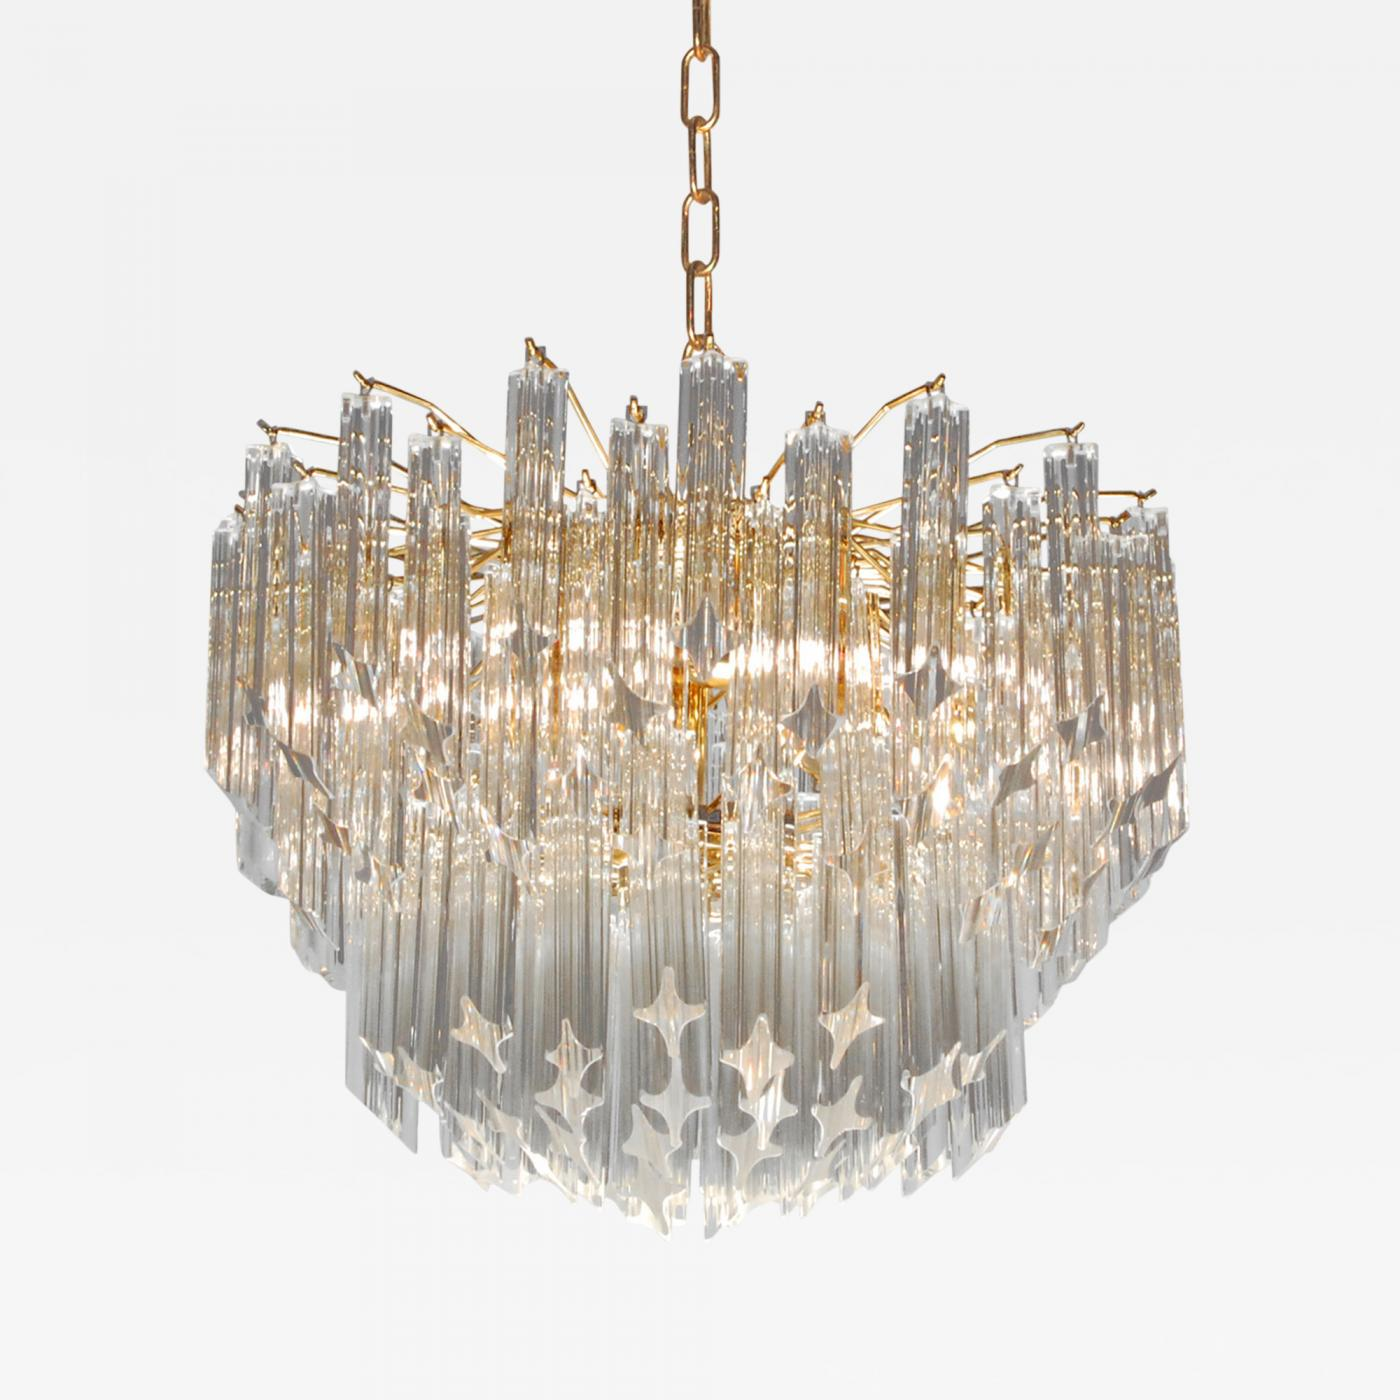 Venini chandelier with solid glass rods from murano 1960s listings furniture lighting chandeliers and pendants aloadofball Images